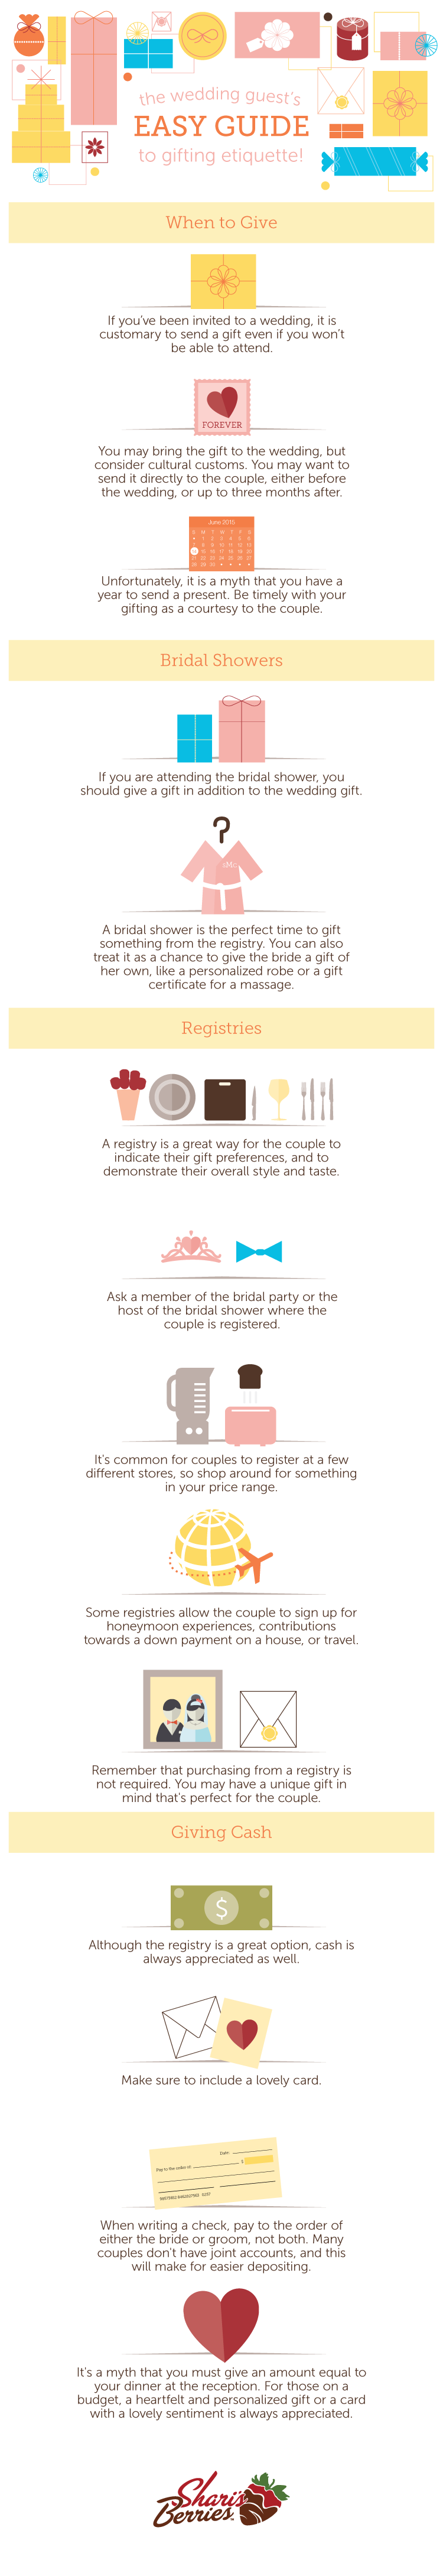 Guide to Wedding Gift Etiquette